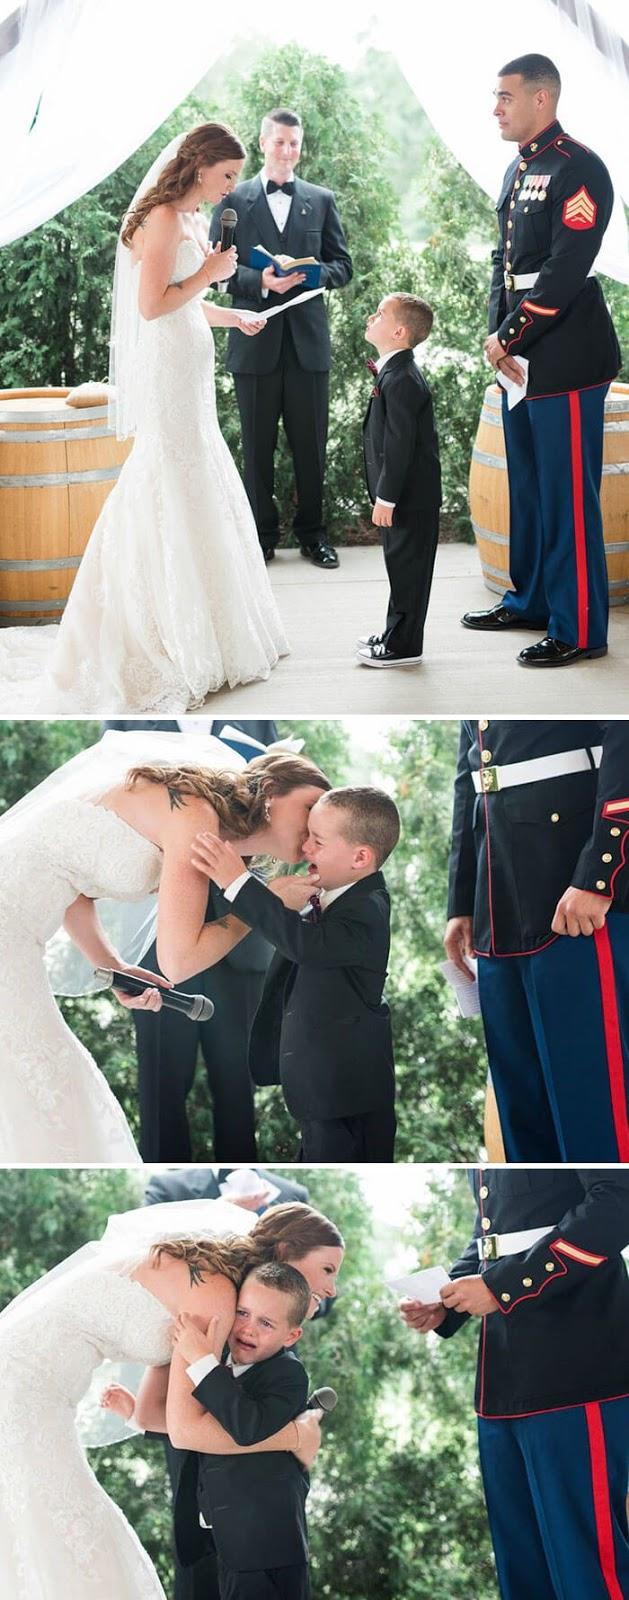 30 Heartwarming Photos That Restored Our Faith In Humanity - 'Life Gave Me The Gift Of You' - Marine's 4-Year-Old Son Cries Tears Of Joy After Hearing New Step-Mom's Vows For Him